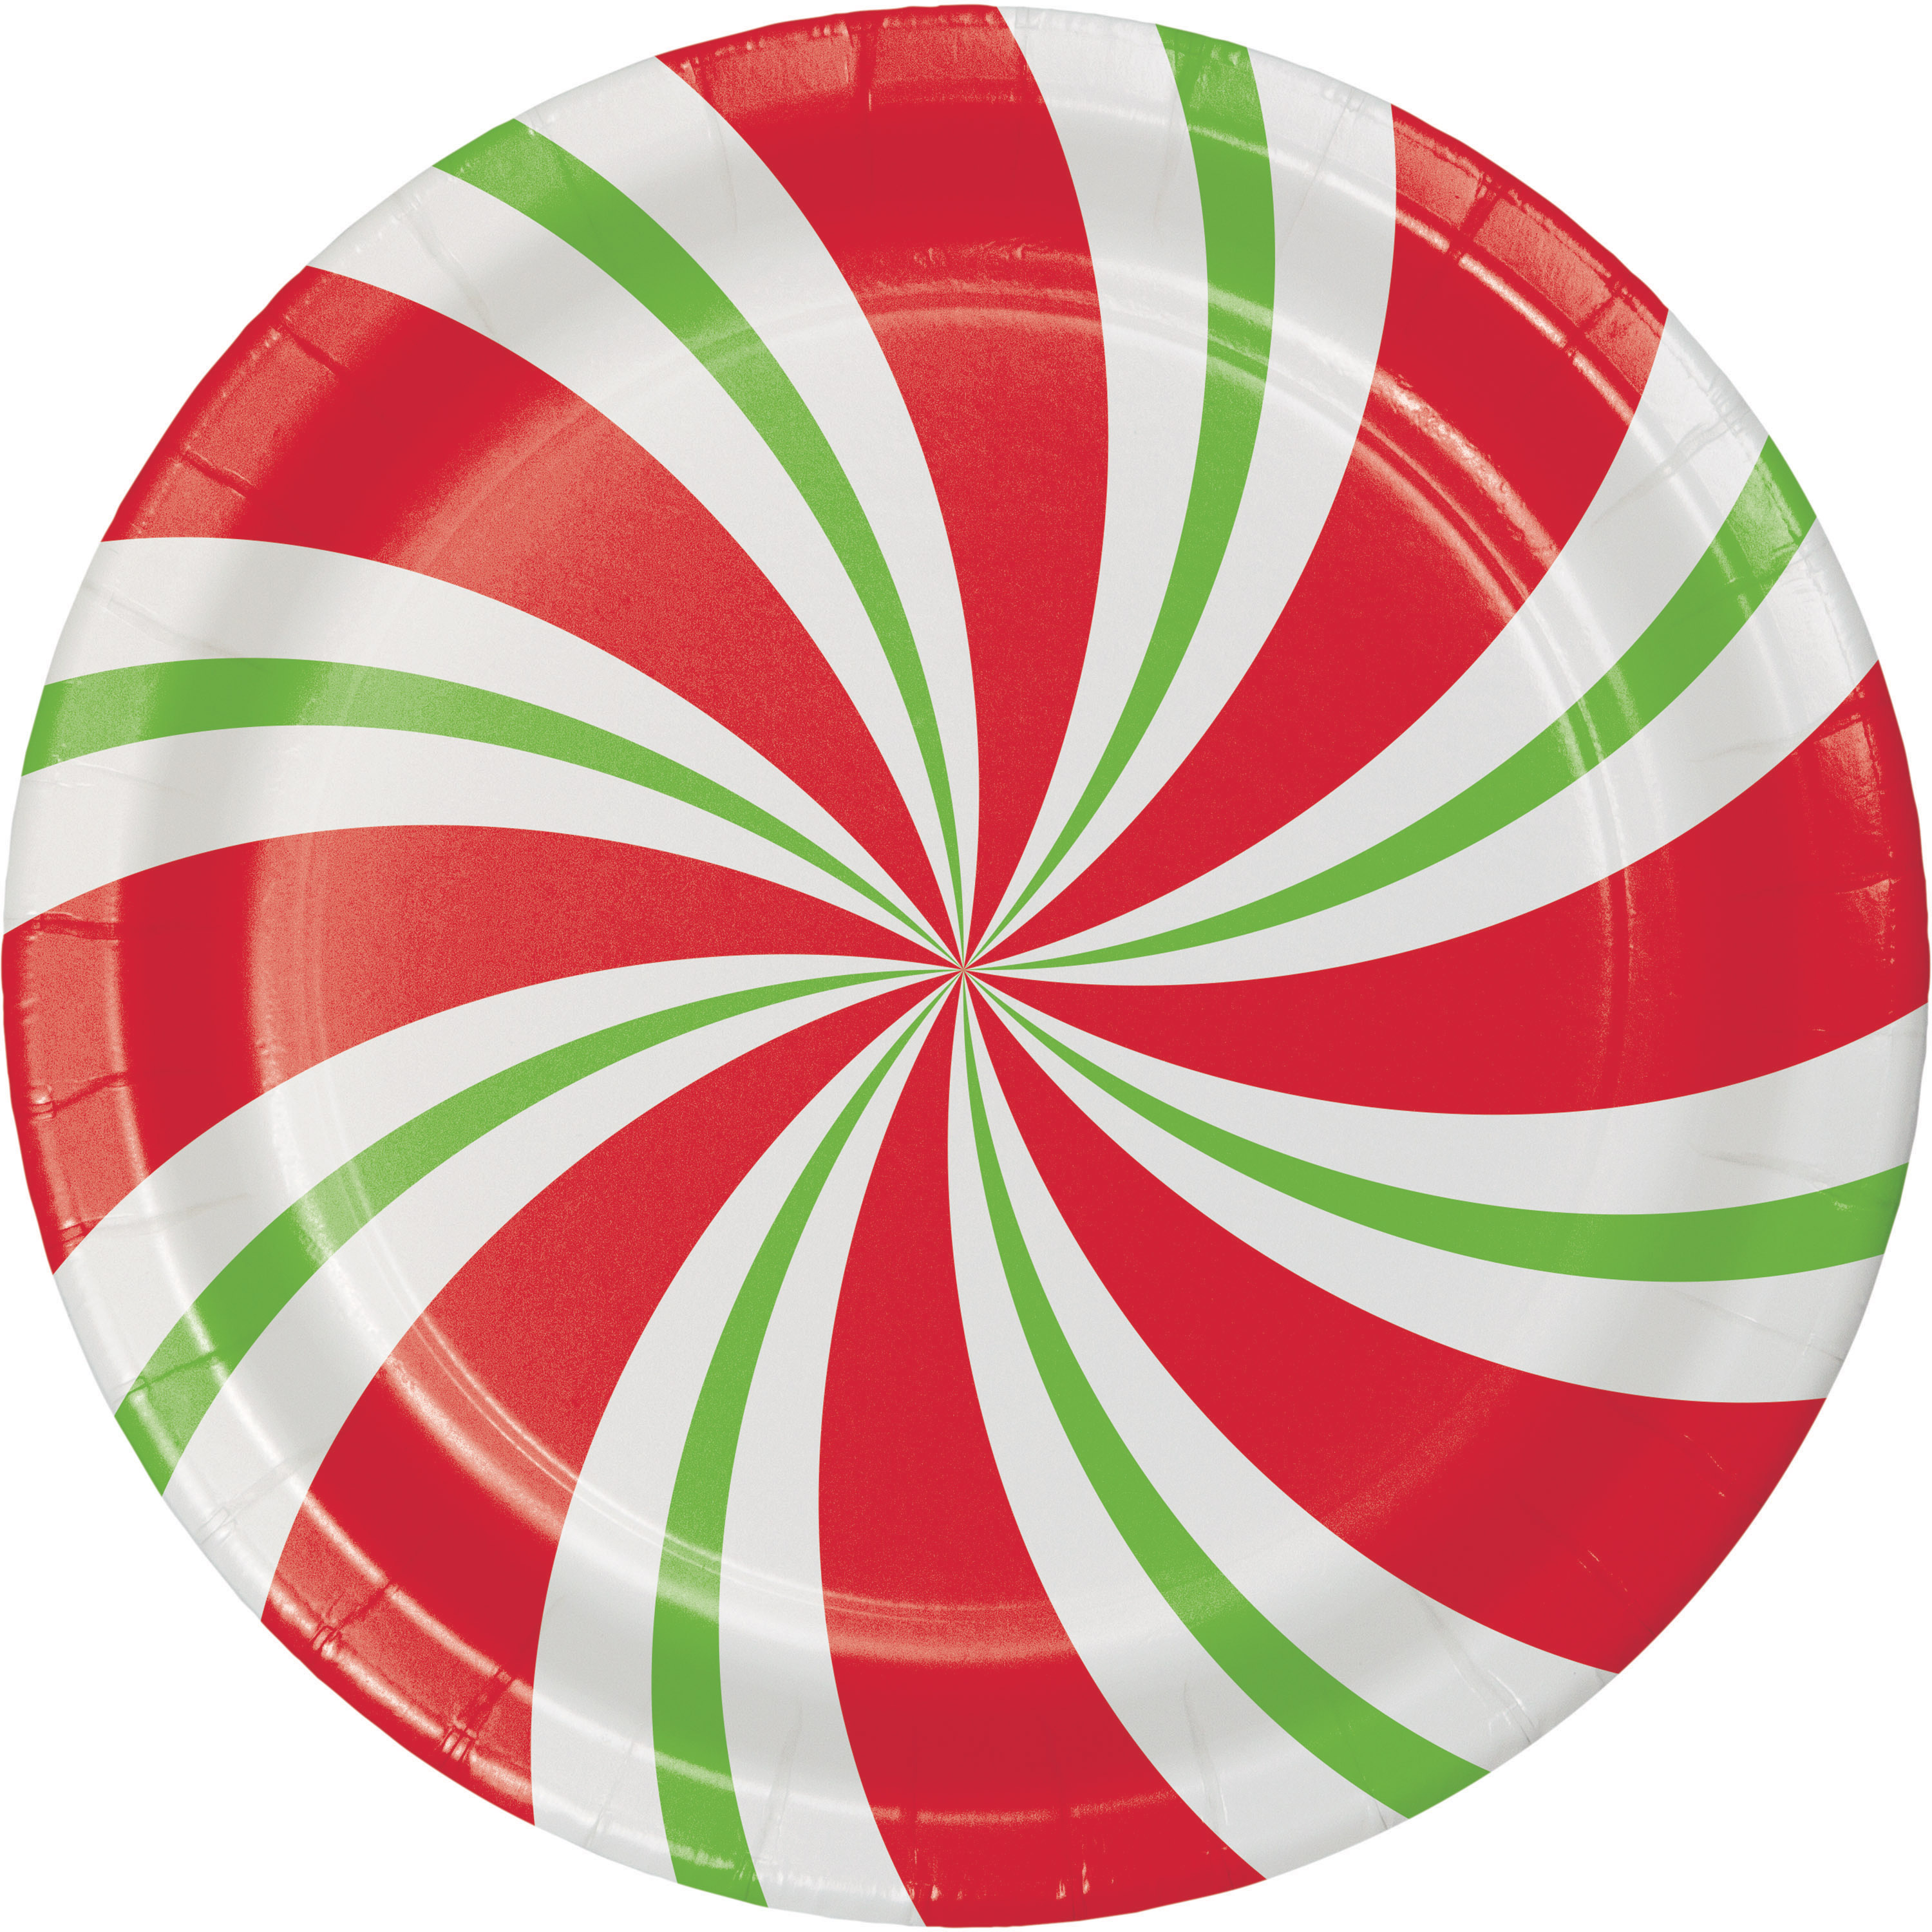 Peppermint Party Paper Plates 8 pack  sc 1 st  Walmart.com & Peppermint Party Paper Plates 8 pack - Walmart.com